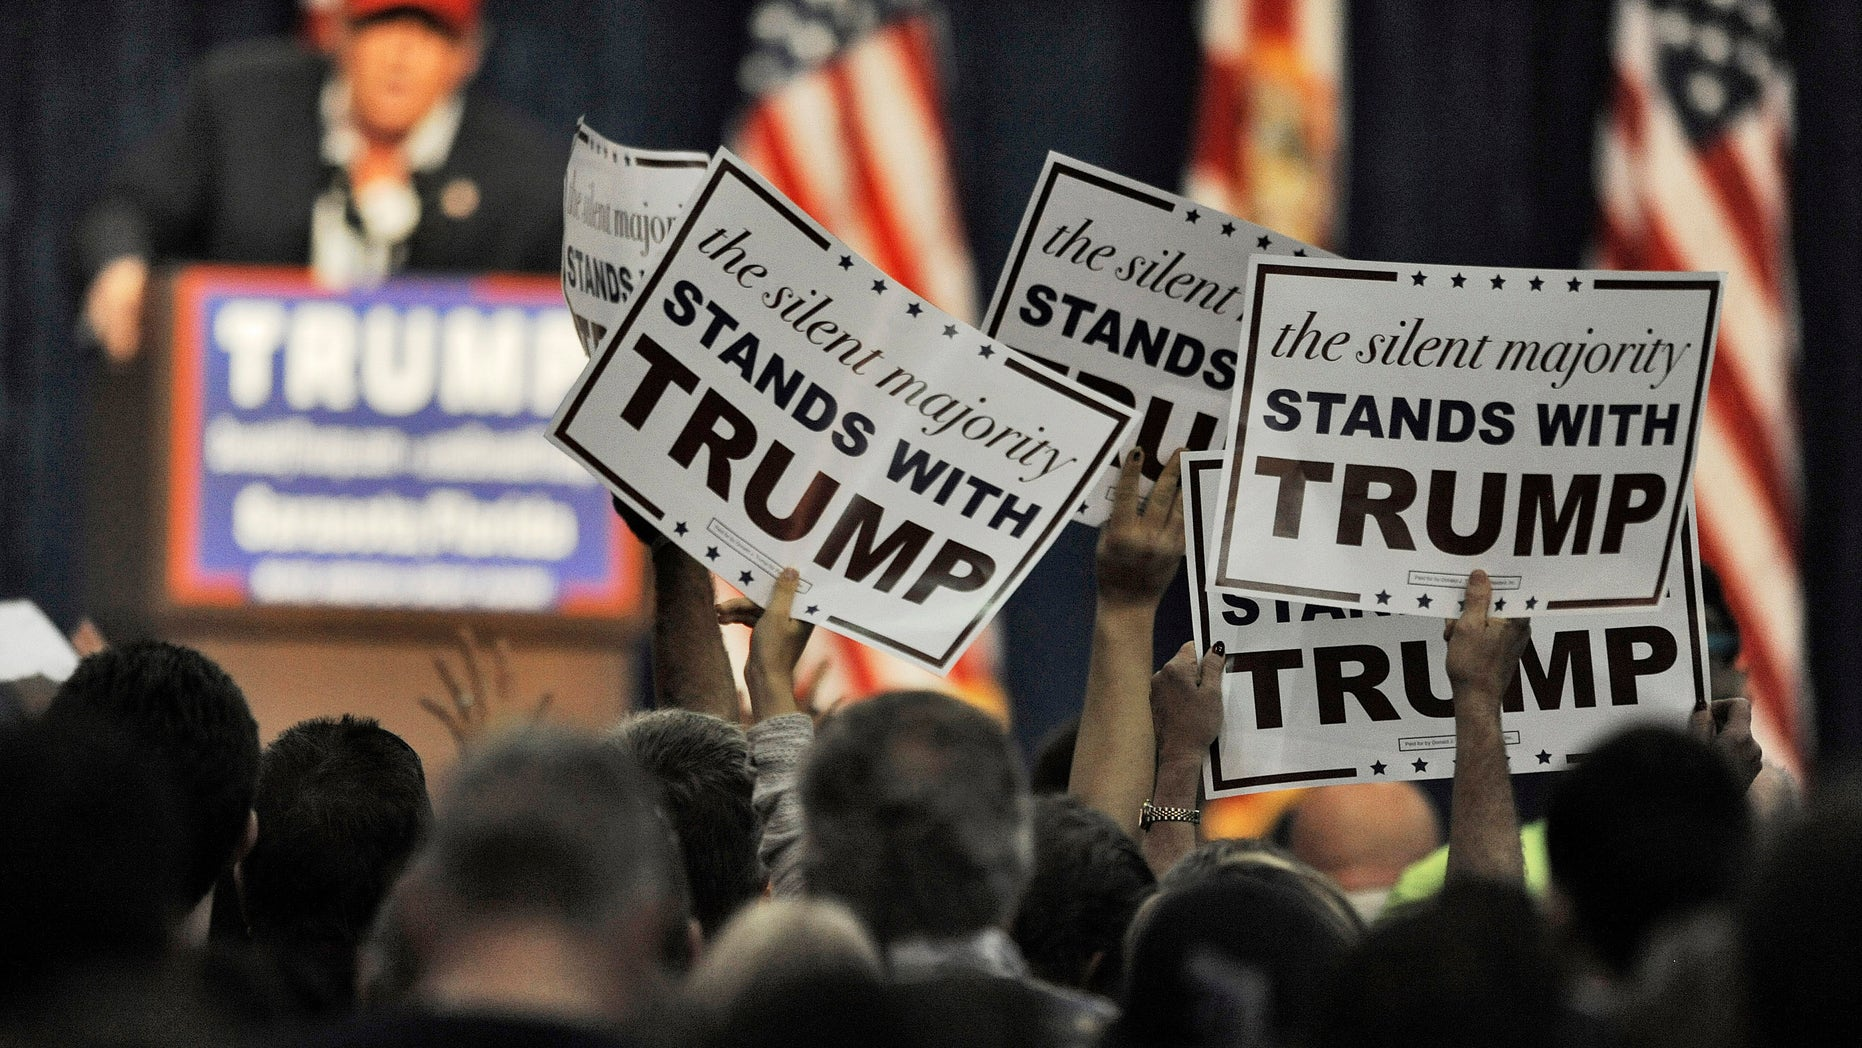 Presidential candidate Donald Trump at a campaign rally Saturday, Nov. 28, 2015 in Sarasota, Fla.